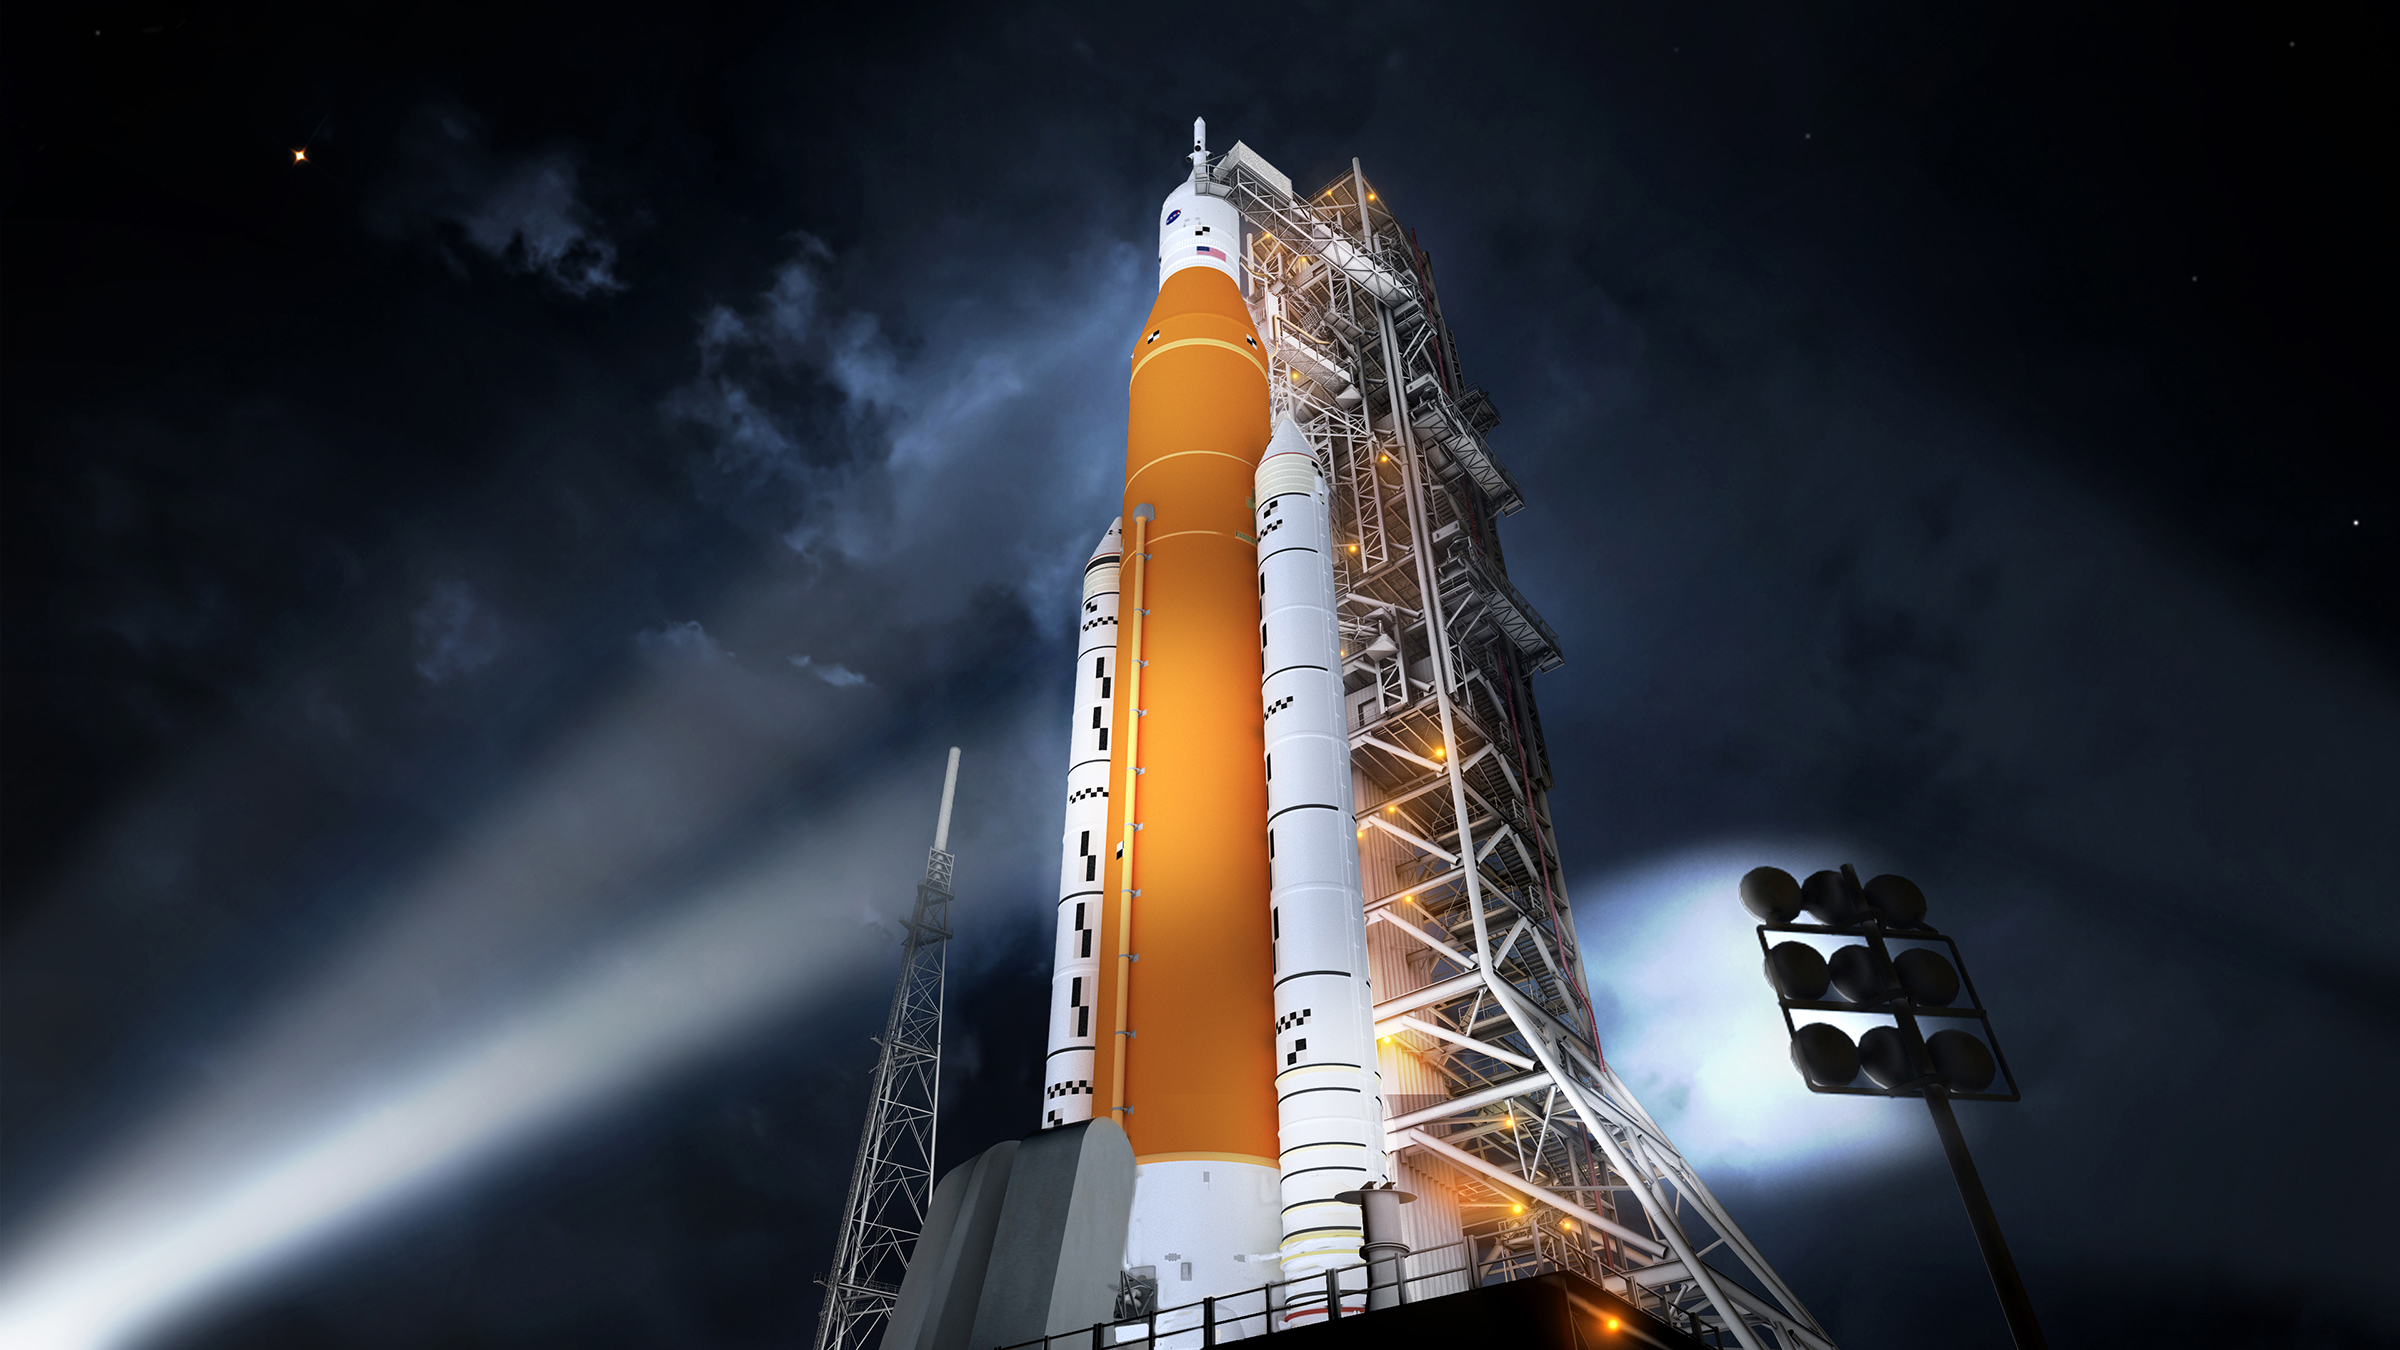 space launch system concept launchpad